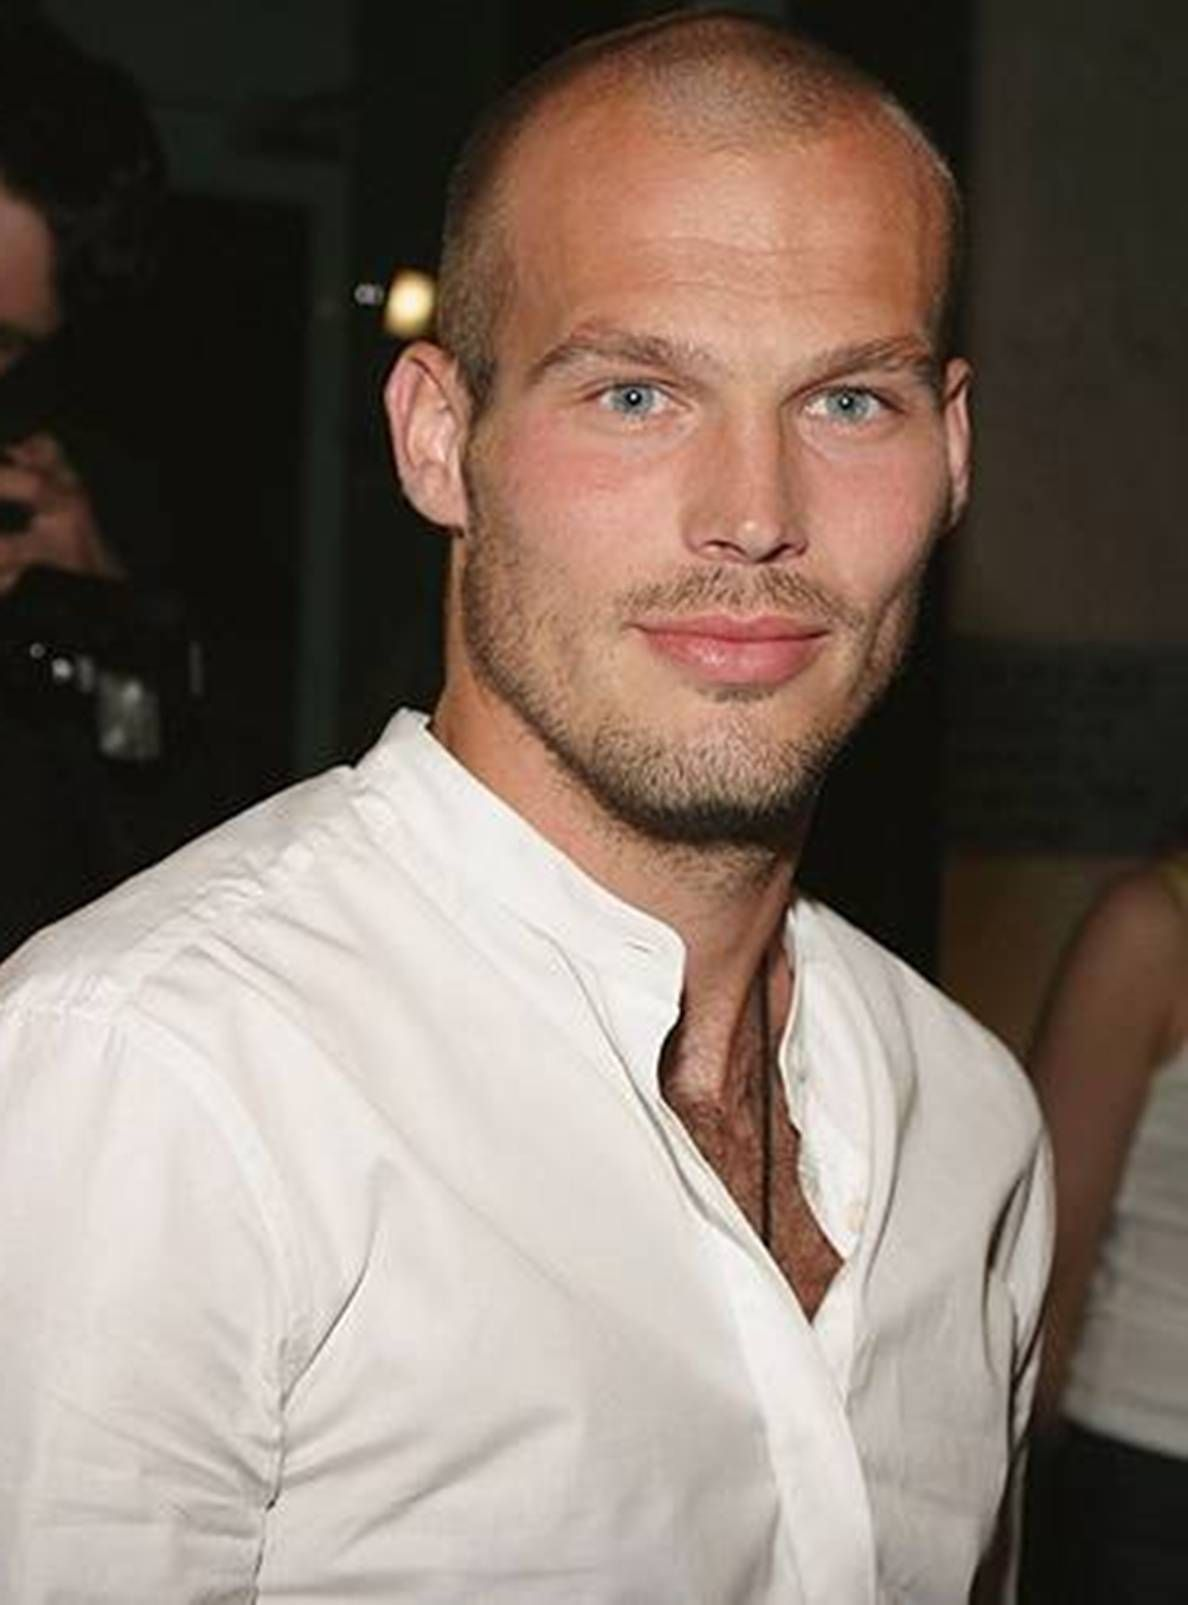 Hairstyles For Balding Men Beauteous Sexy Bald Men  13 Reasons Why Bald Men Rule  Page 3 Of 5